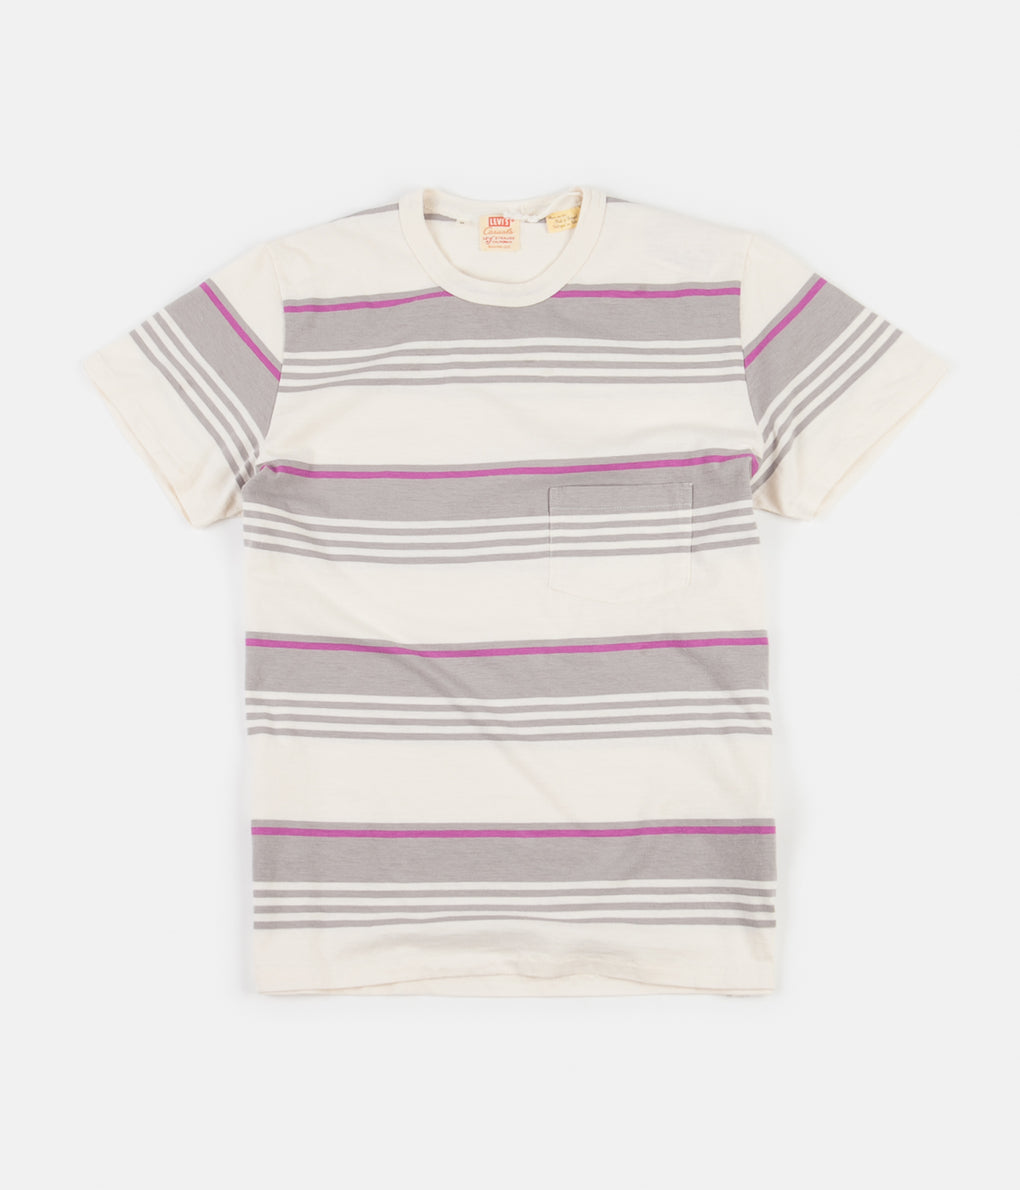 Levi's® Vintage Clothing 1960's Casuals Stripe T-Shirt - Grey